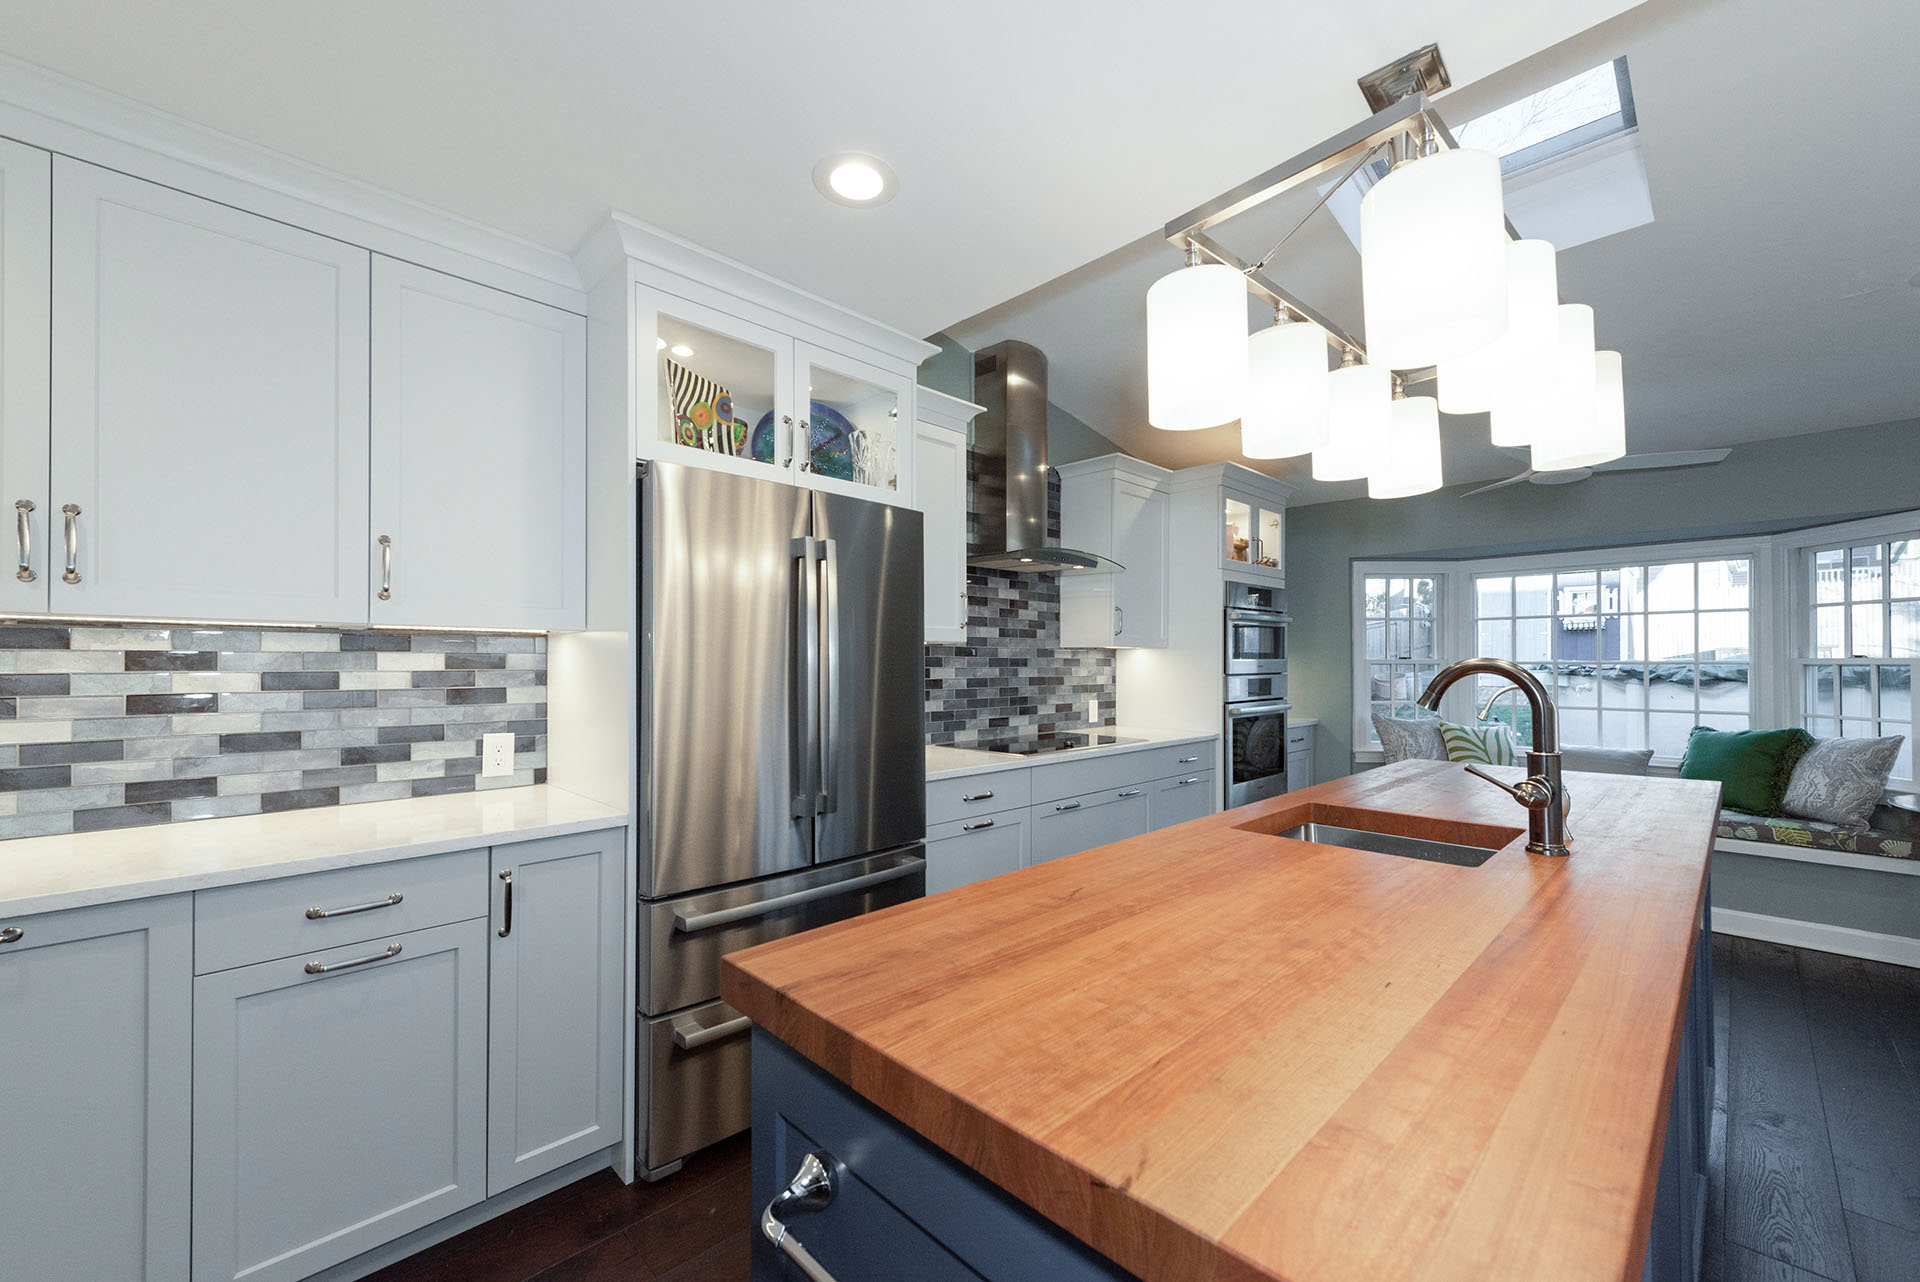 joan bigg kitchen design contemporary farmhouse kitchen grothouse custom wood countertop westchester ny